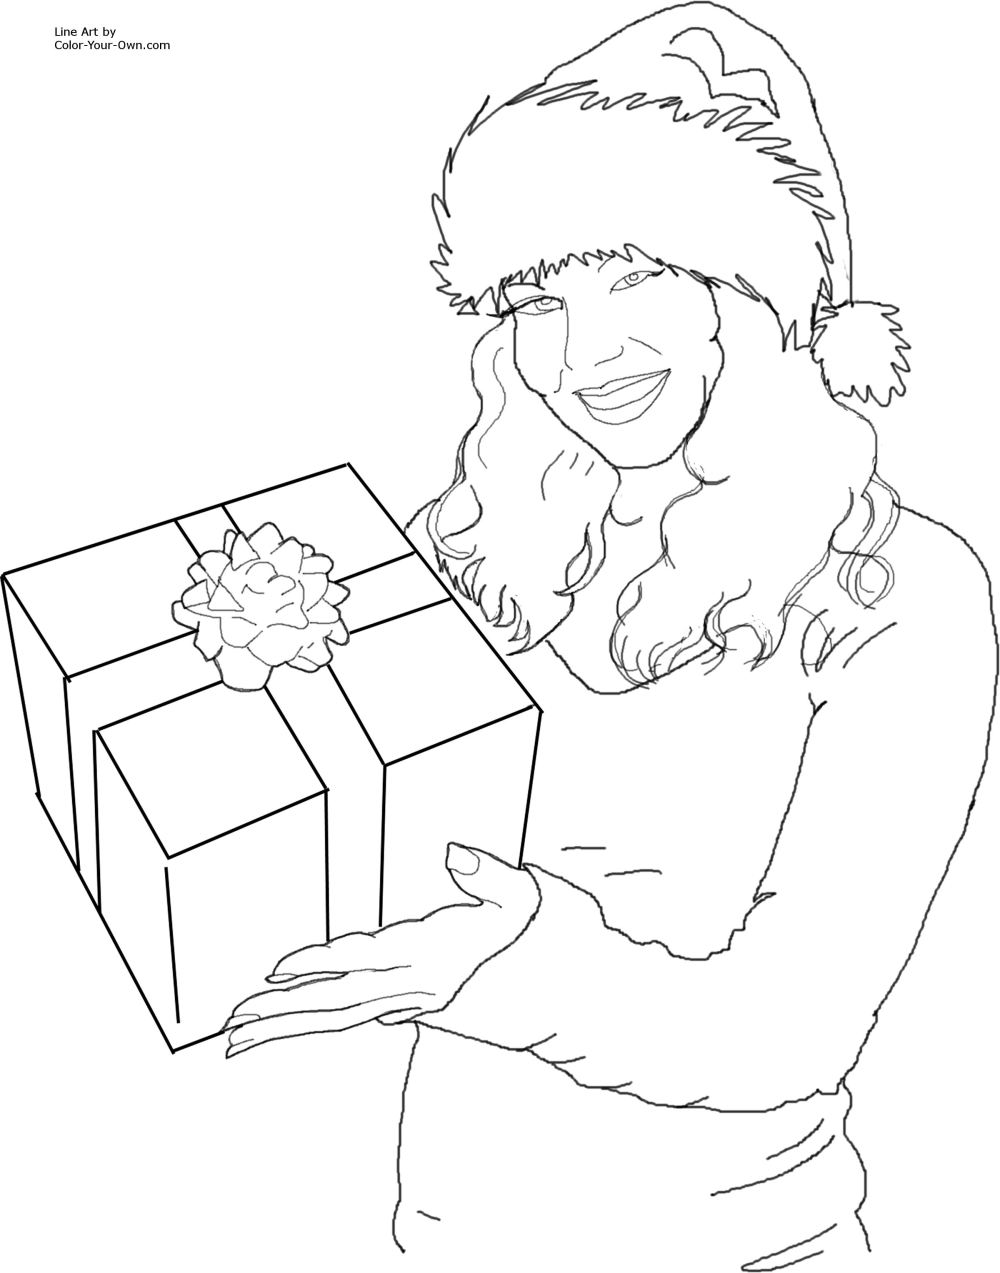 medium resolution of 433x527 chevy silverado parts diagram systematic drawing accordingly famreit 2400x3056 christmas santa s helper with a gift coloring page